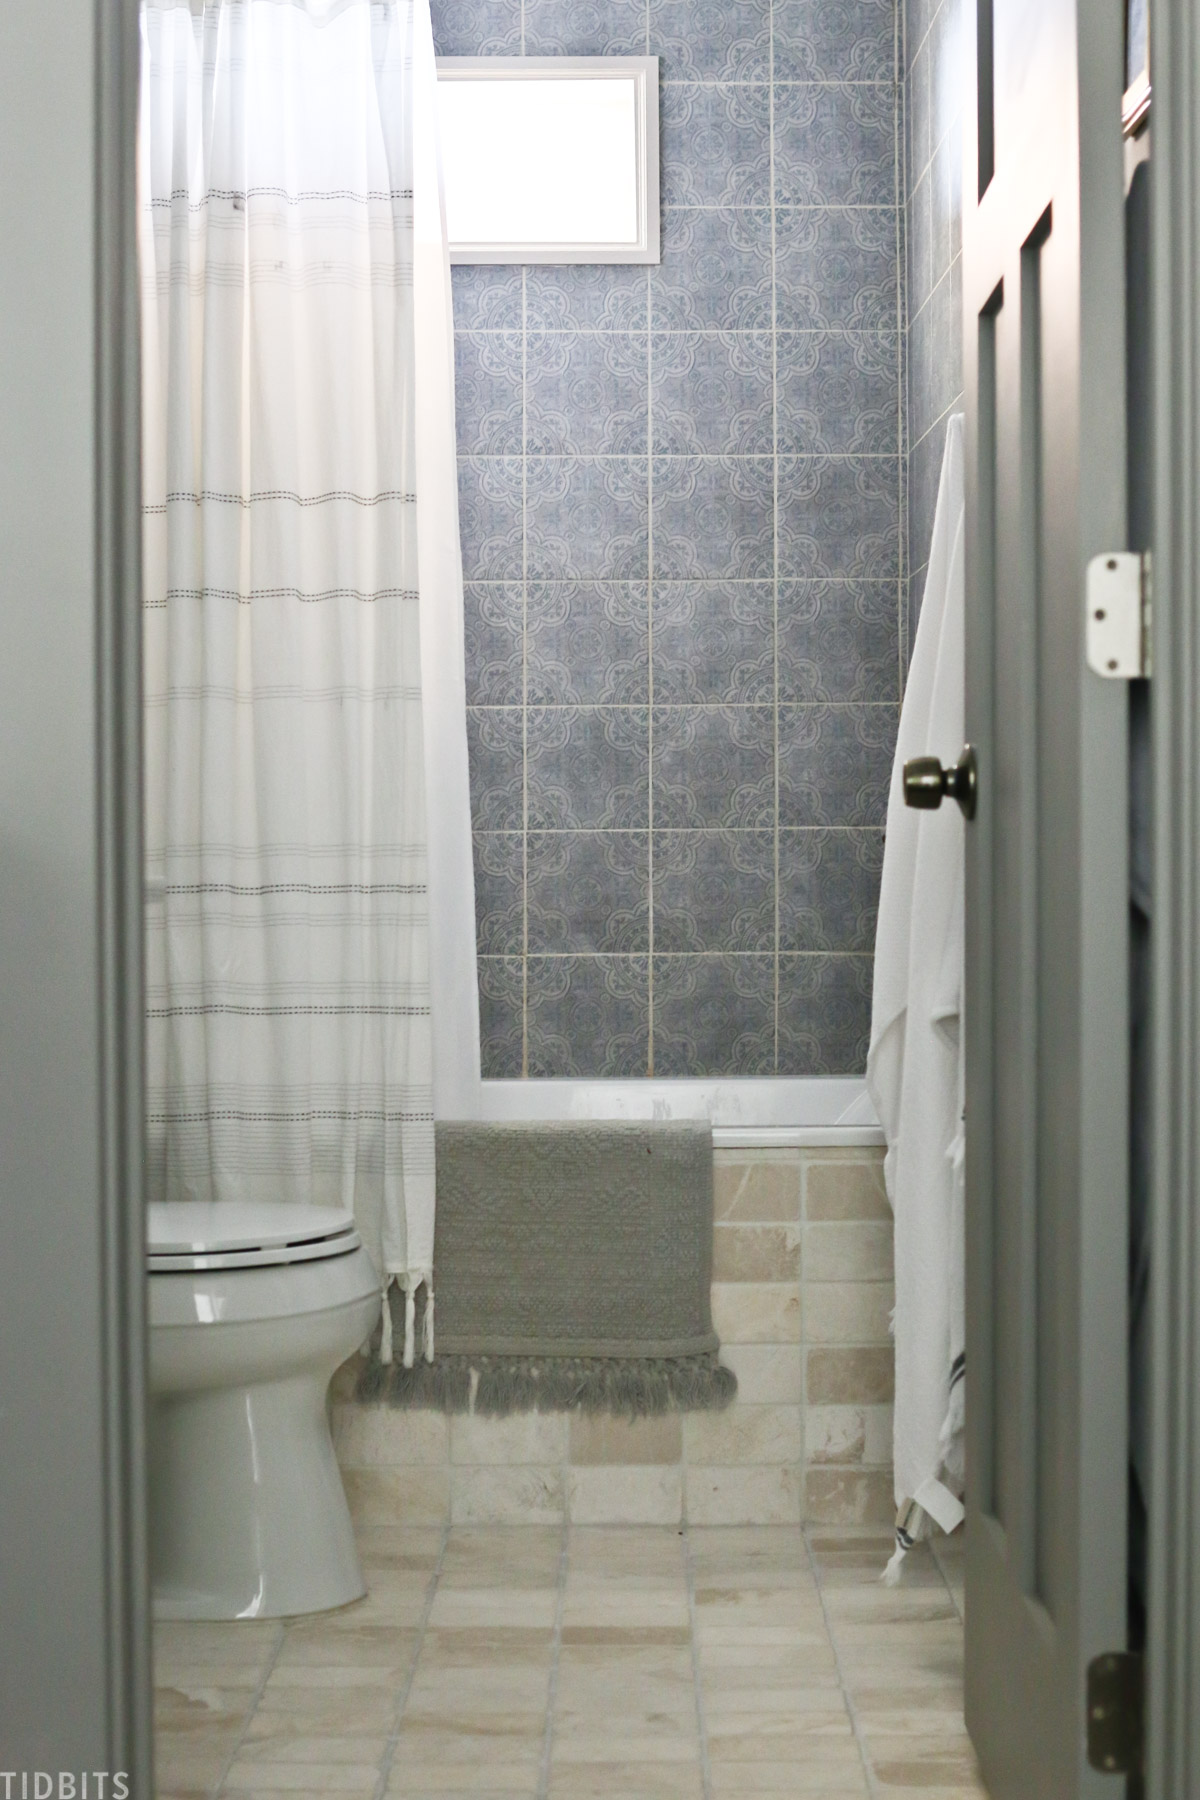 blue tiles installed above bathtub and neutral colored tiles installed on the floor of a bathroom